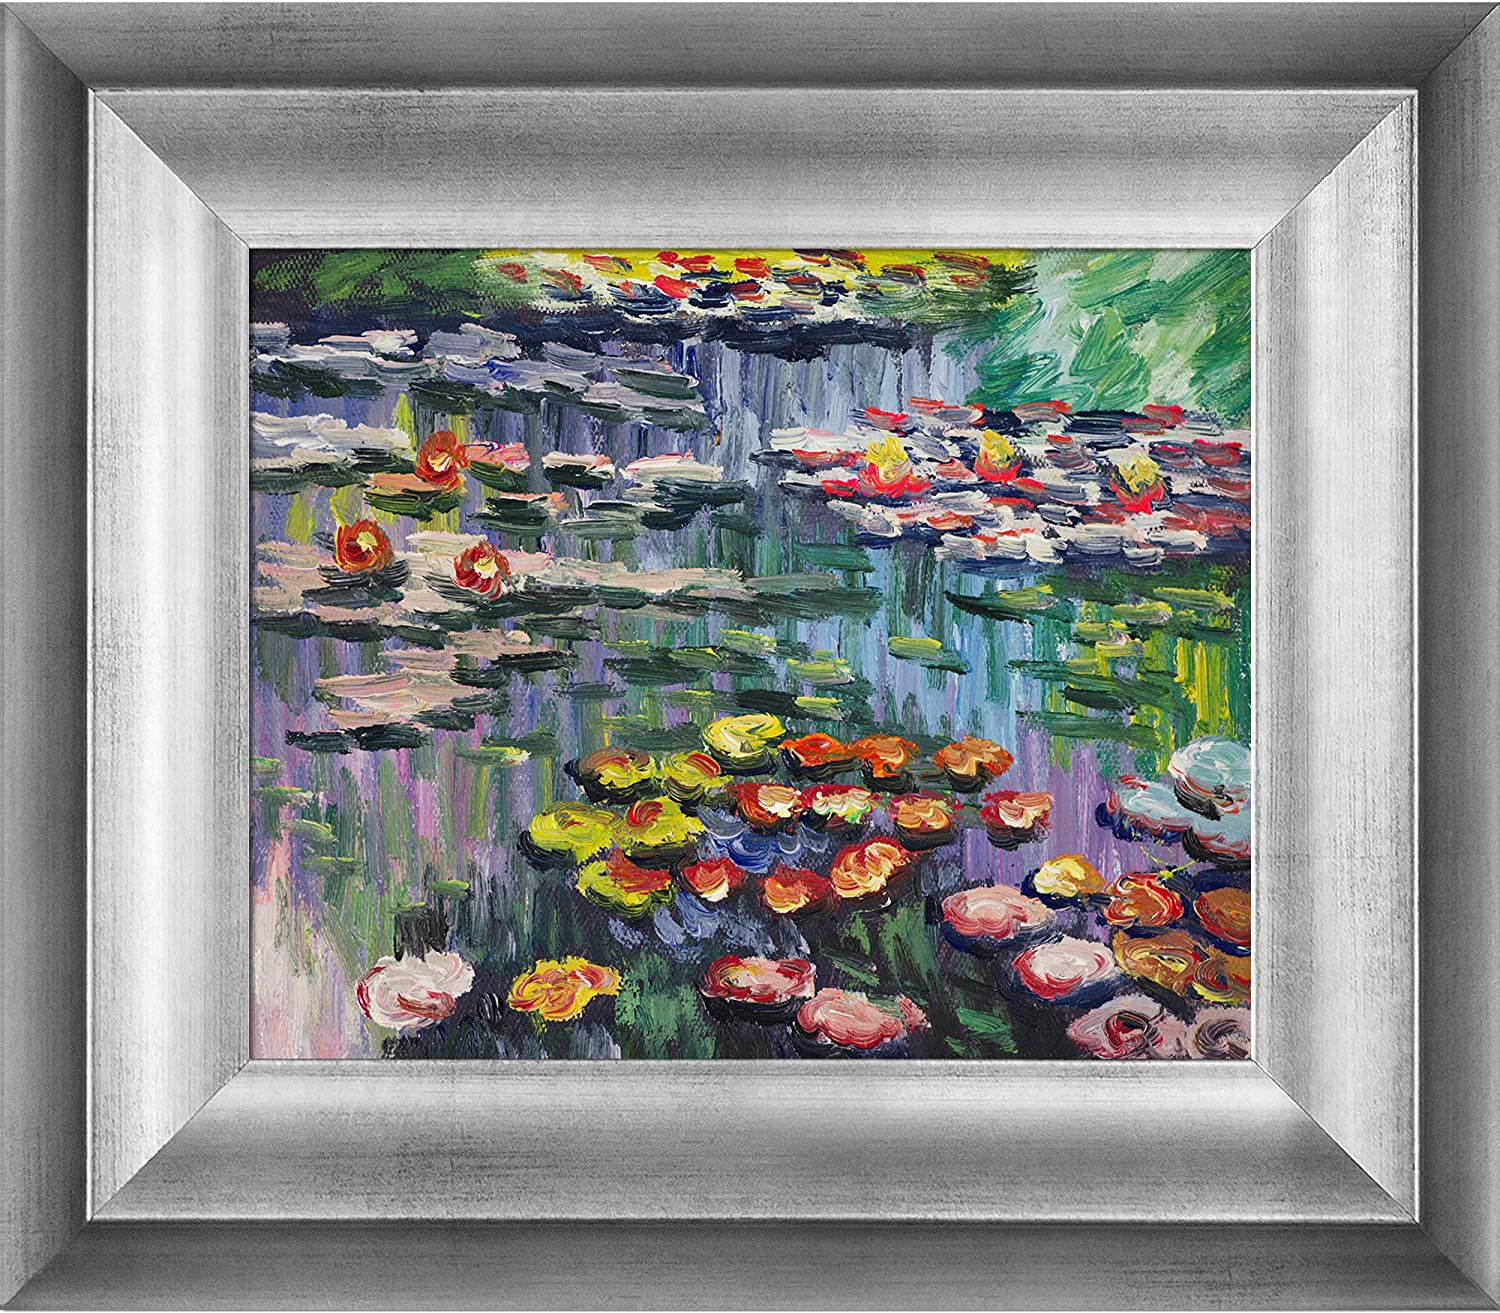 overstockArt Monet Water free shipping Lilies Artwork Antique Athenian Al sold out. Si with